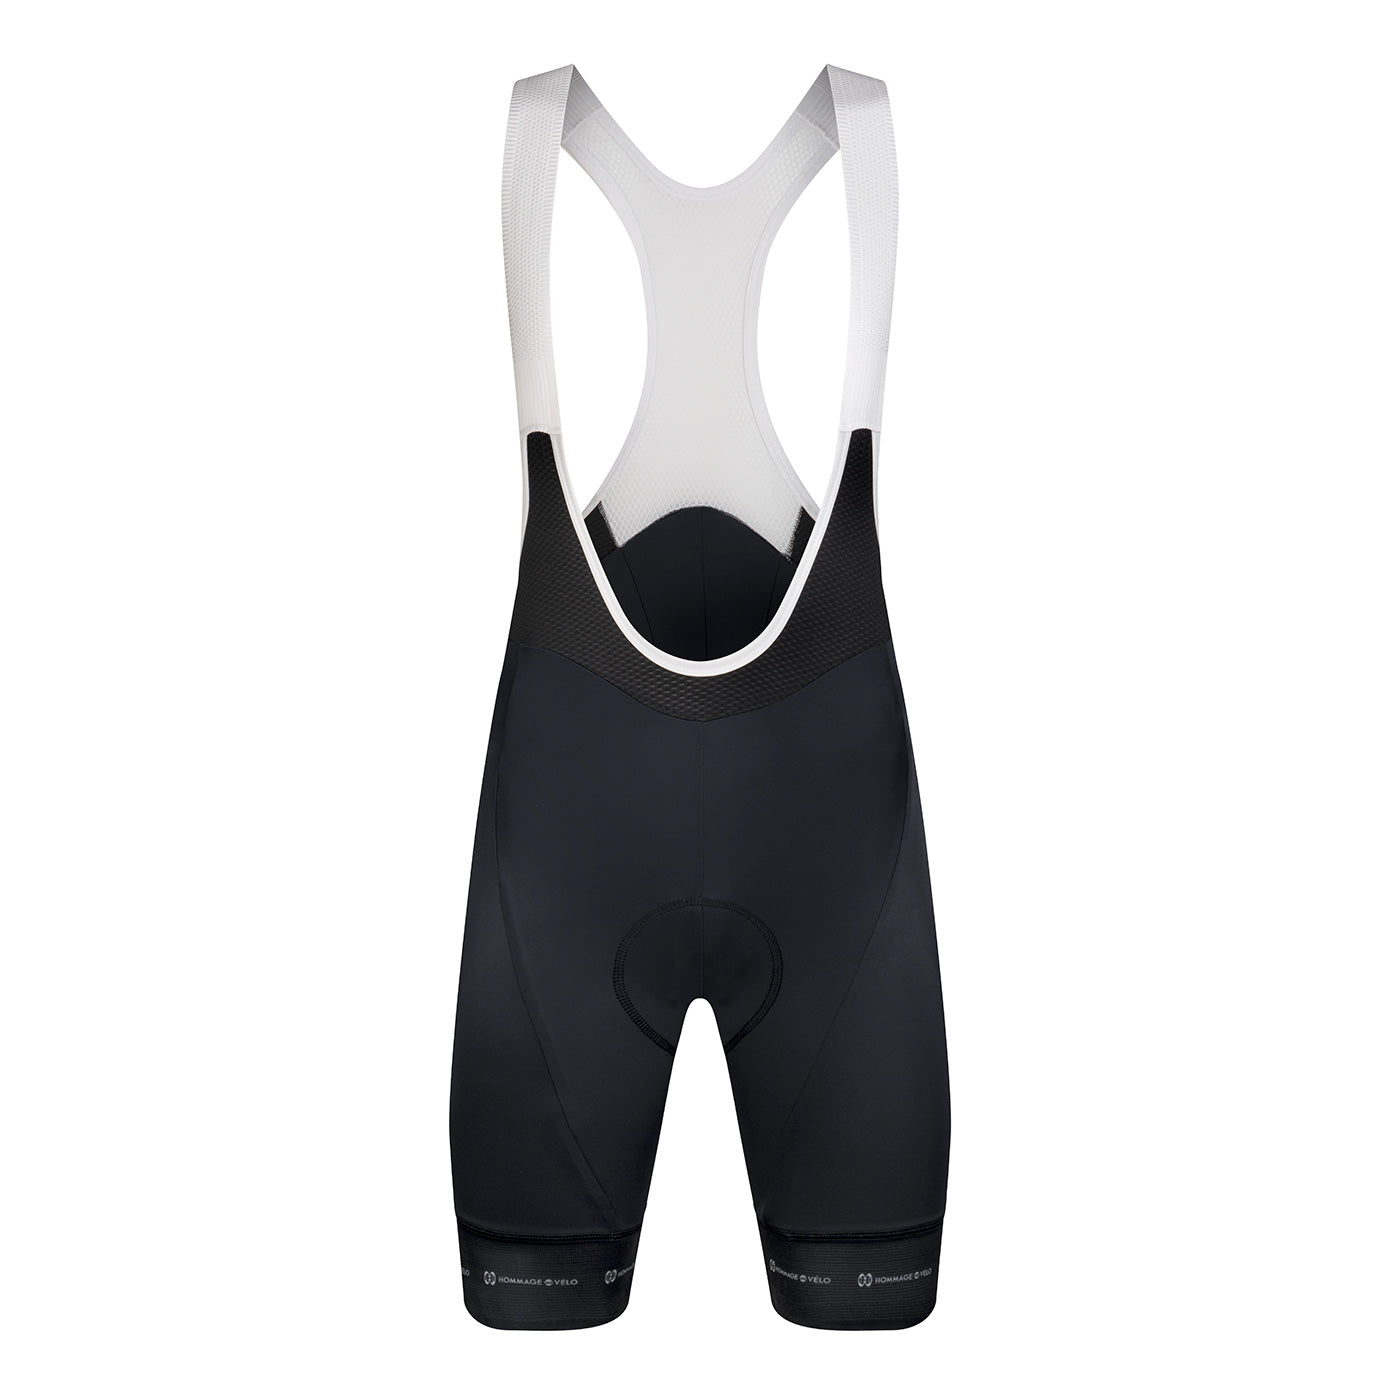 Booty Bib-Shorts Black